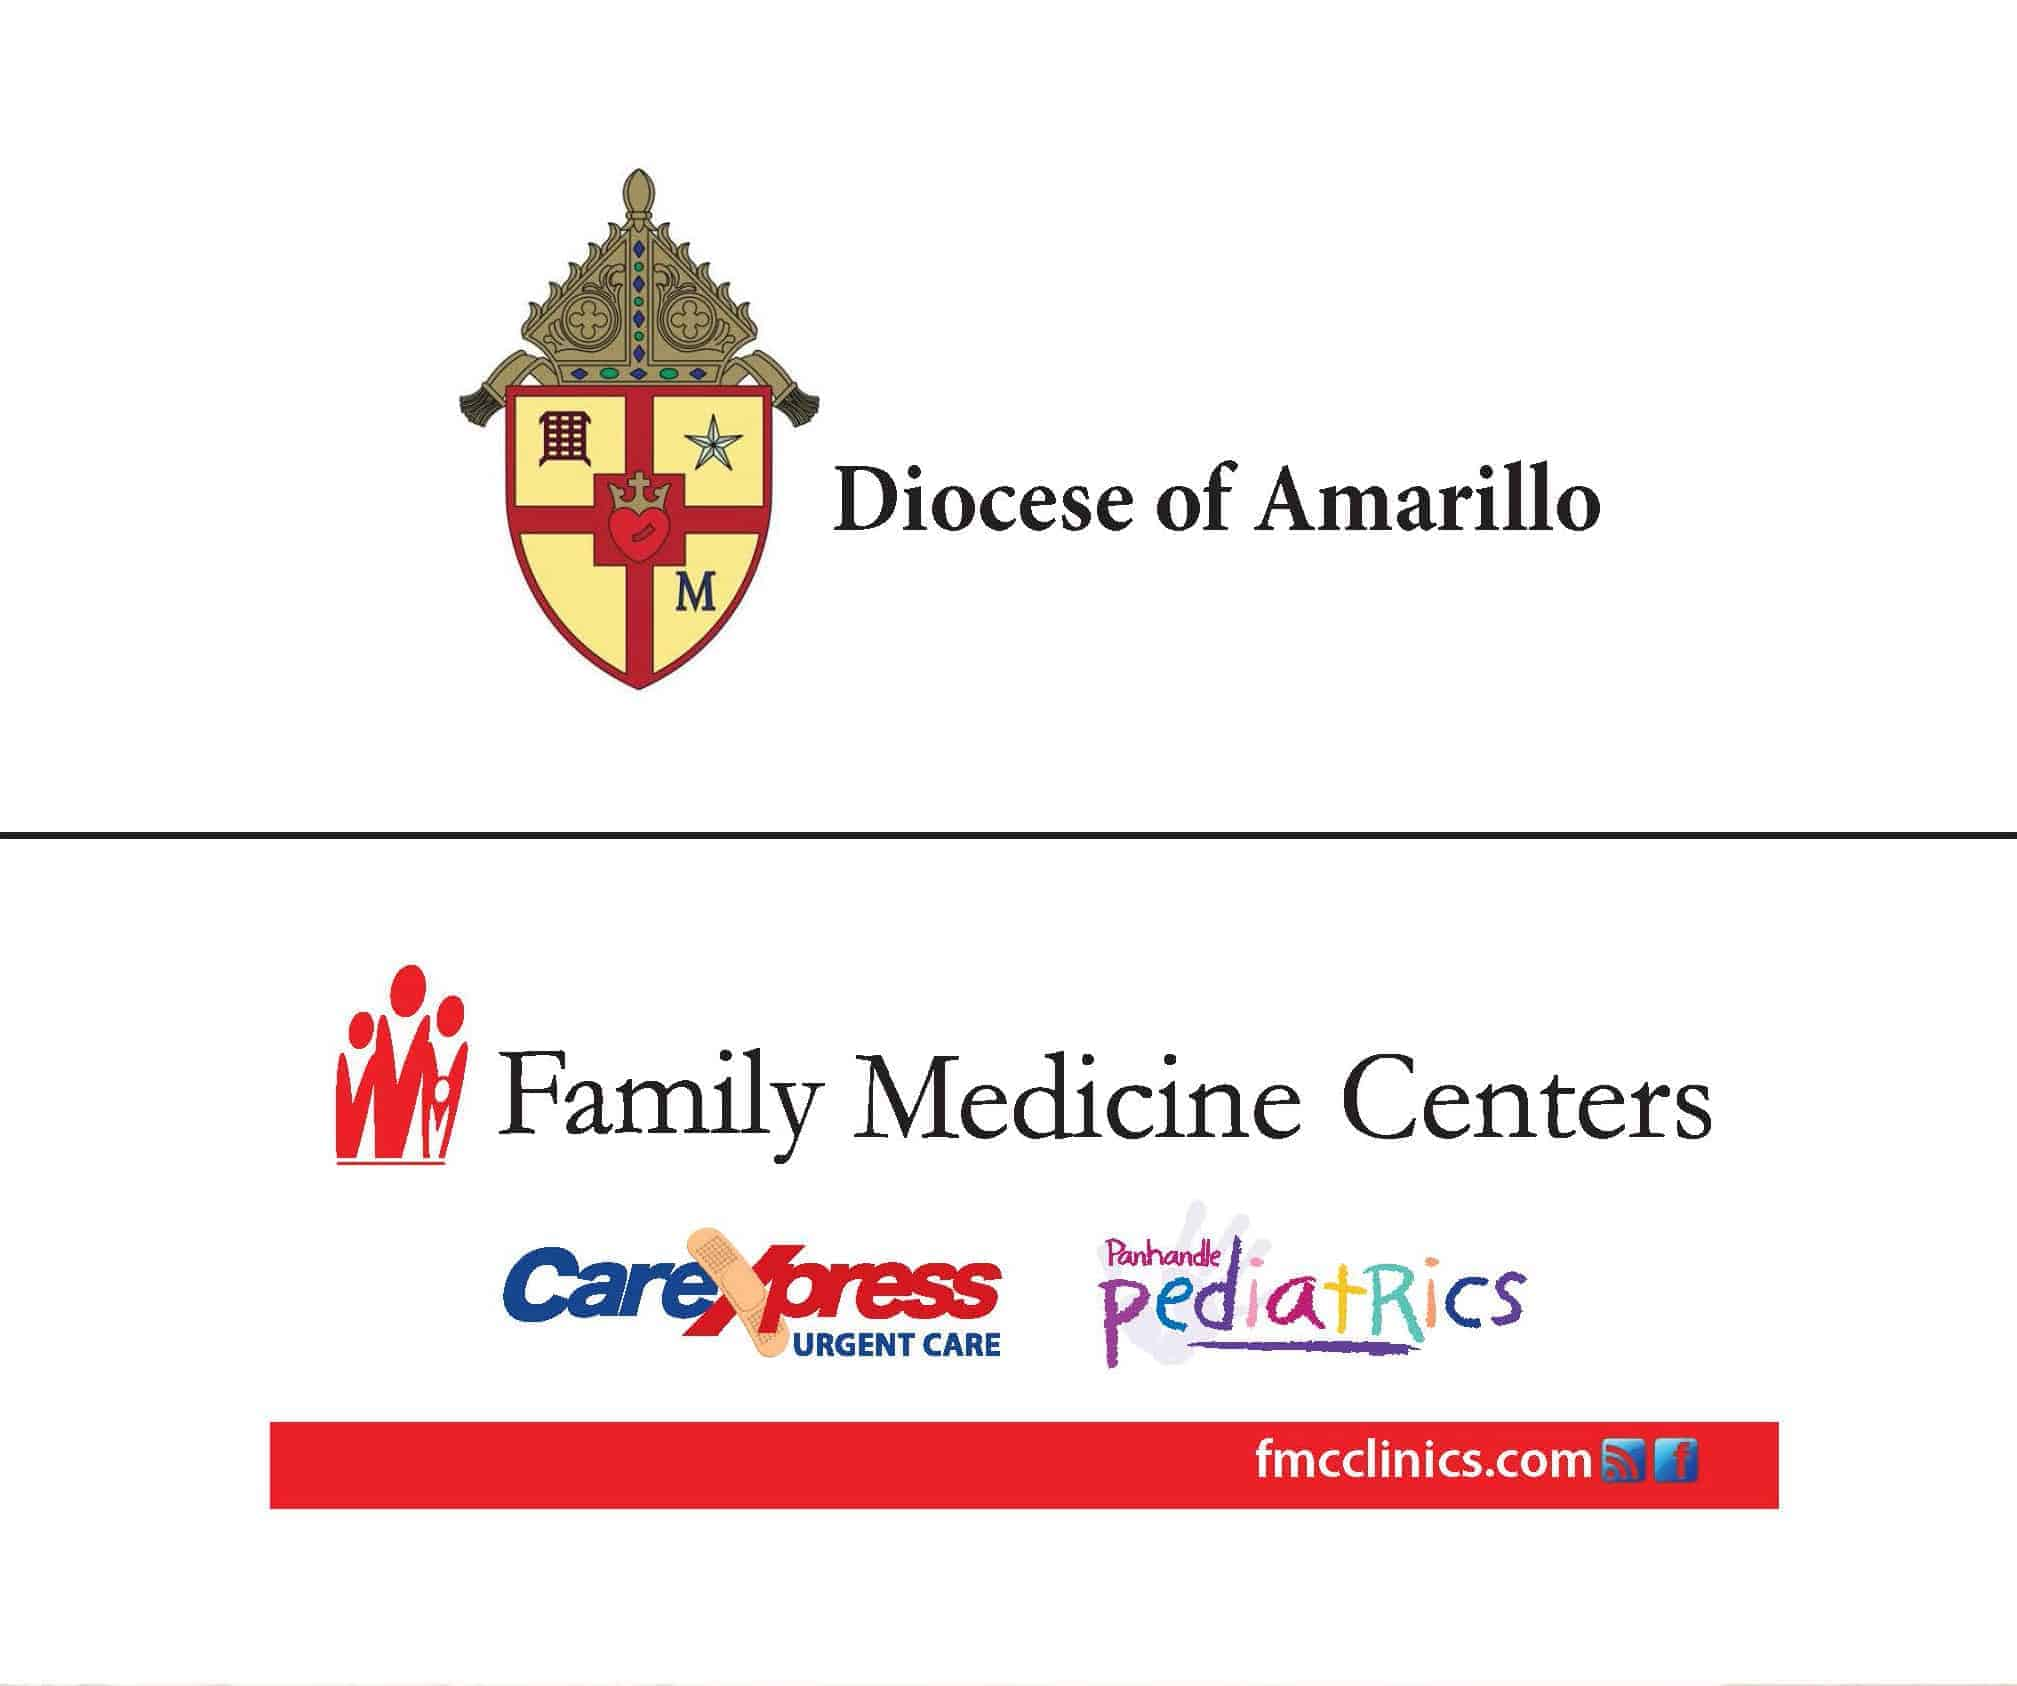 Diocese of Amarillo and Family Medicine Centers